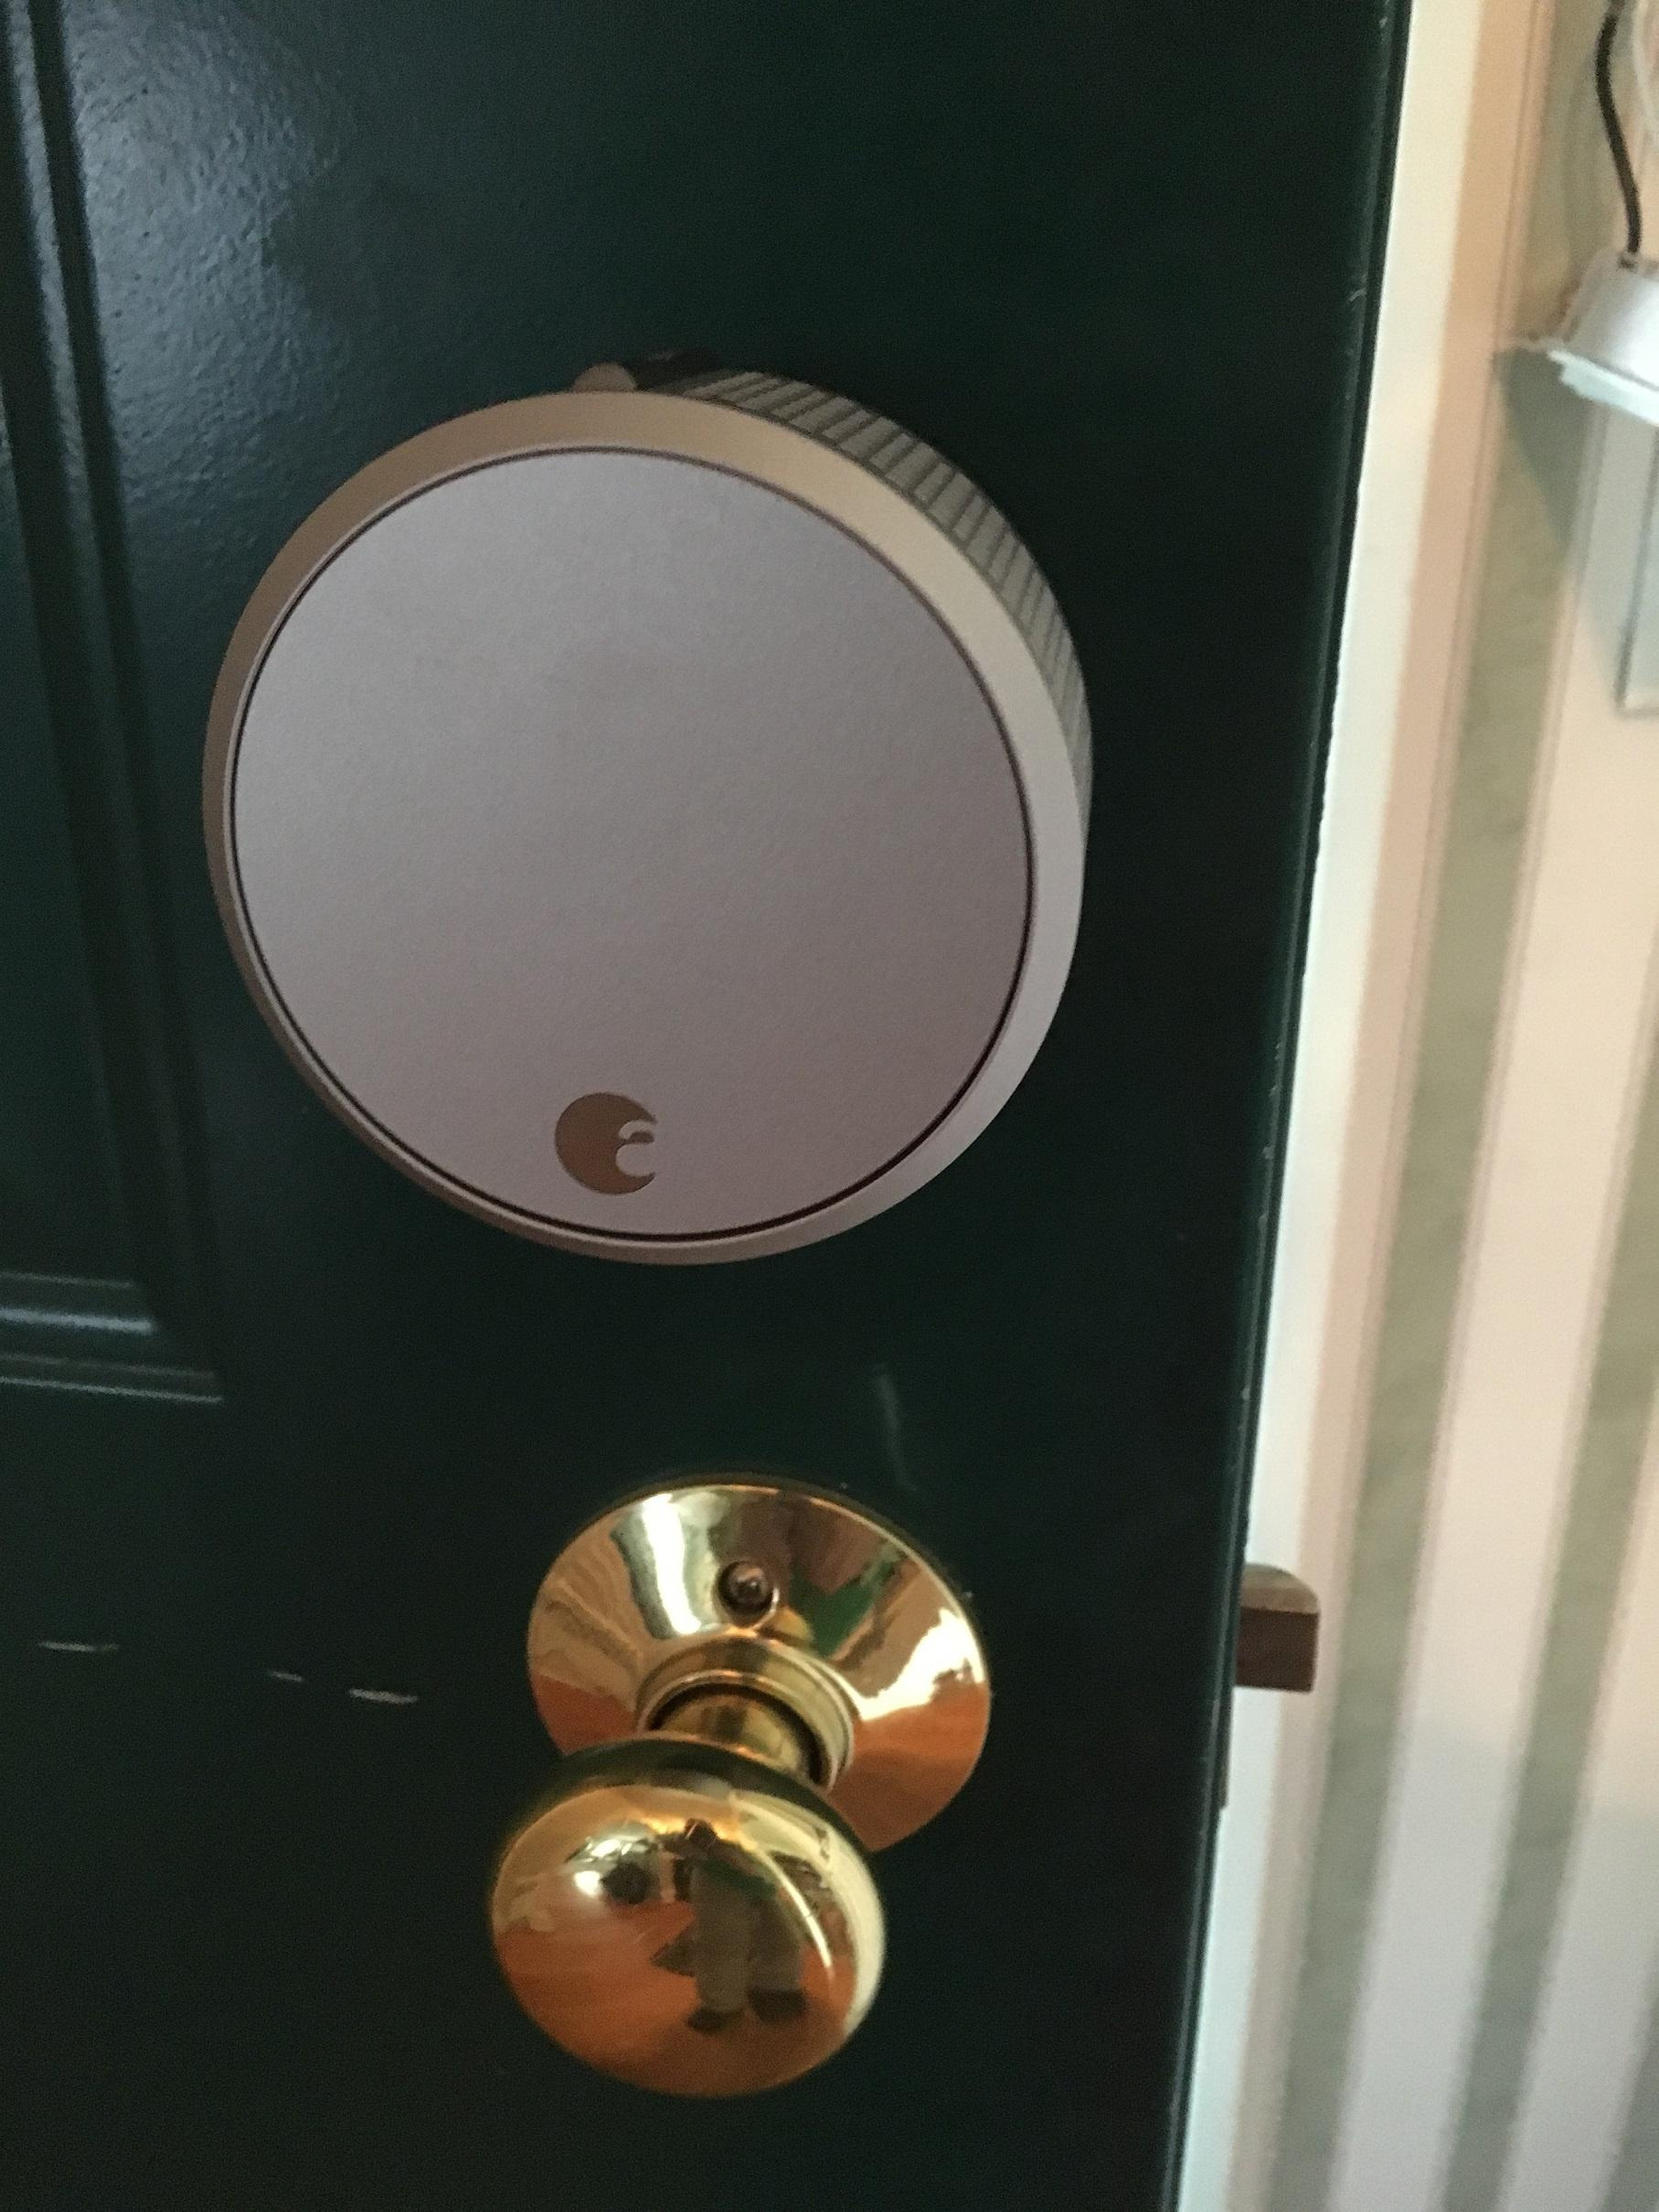 August Home Smart Lock Installed